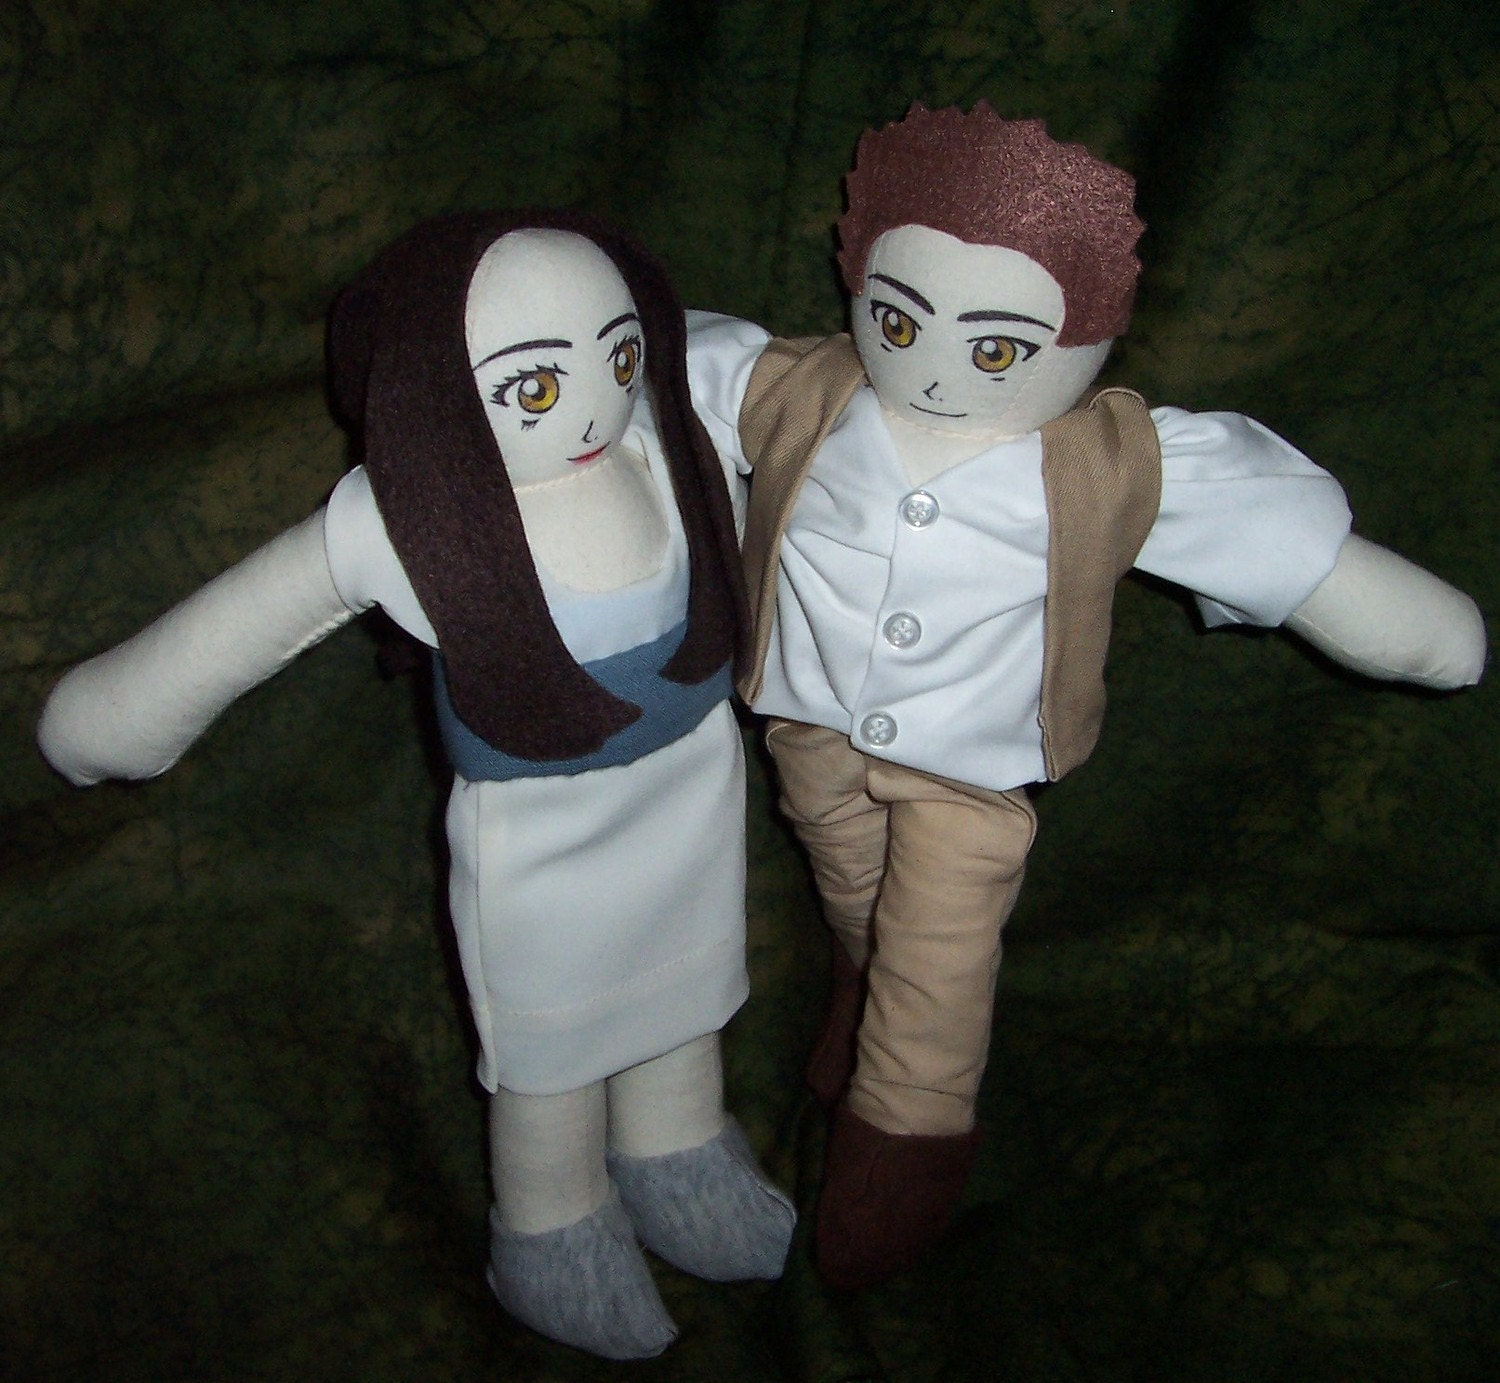 Twilight New Moon Edward and Bella Dolls